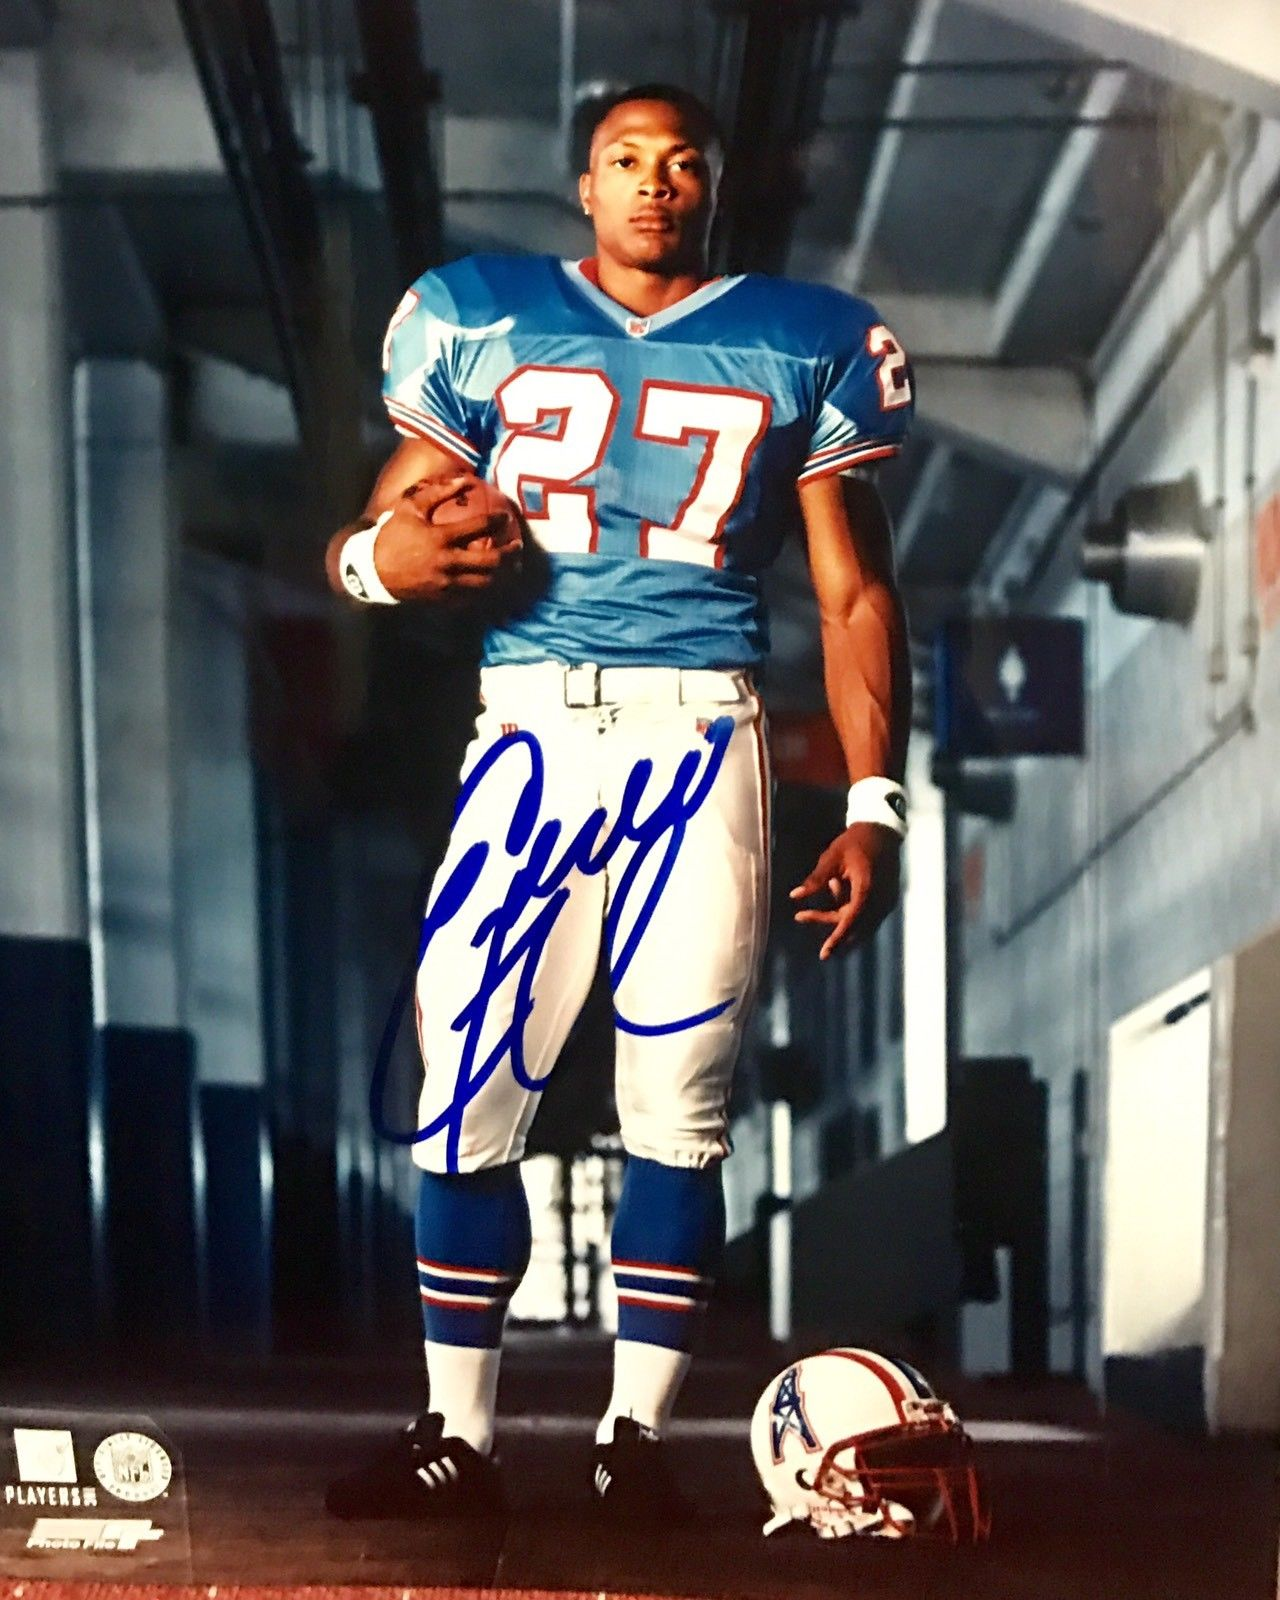 Eddie George Authentic Signed 8x10 Photo - OHIO STATE HEISMAN PRO BOWL - Top Notch Signatures LLC